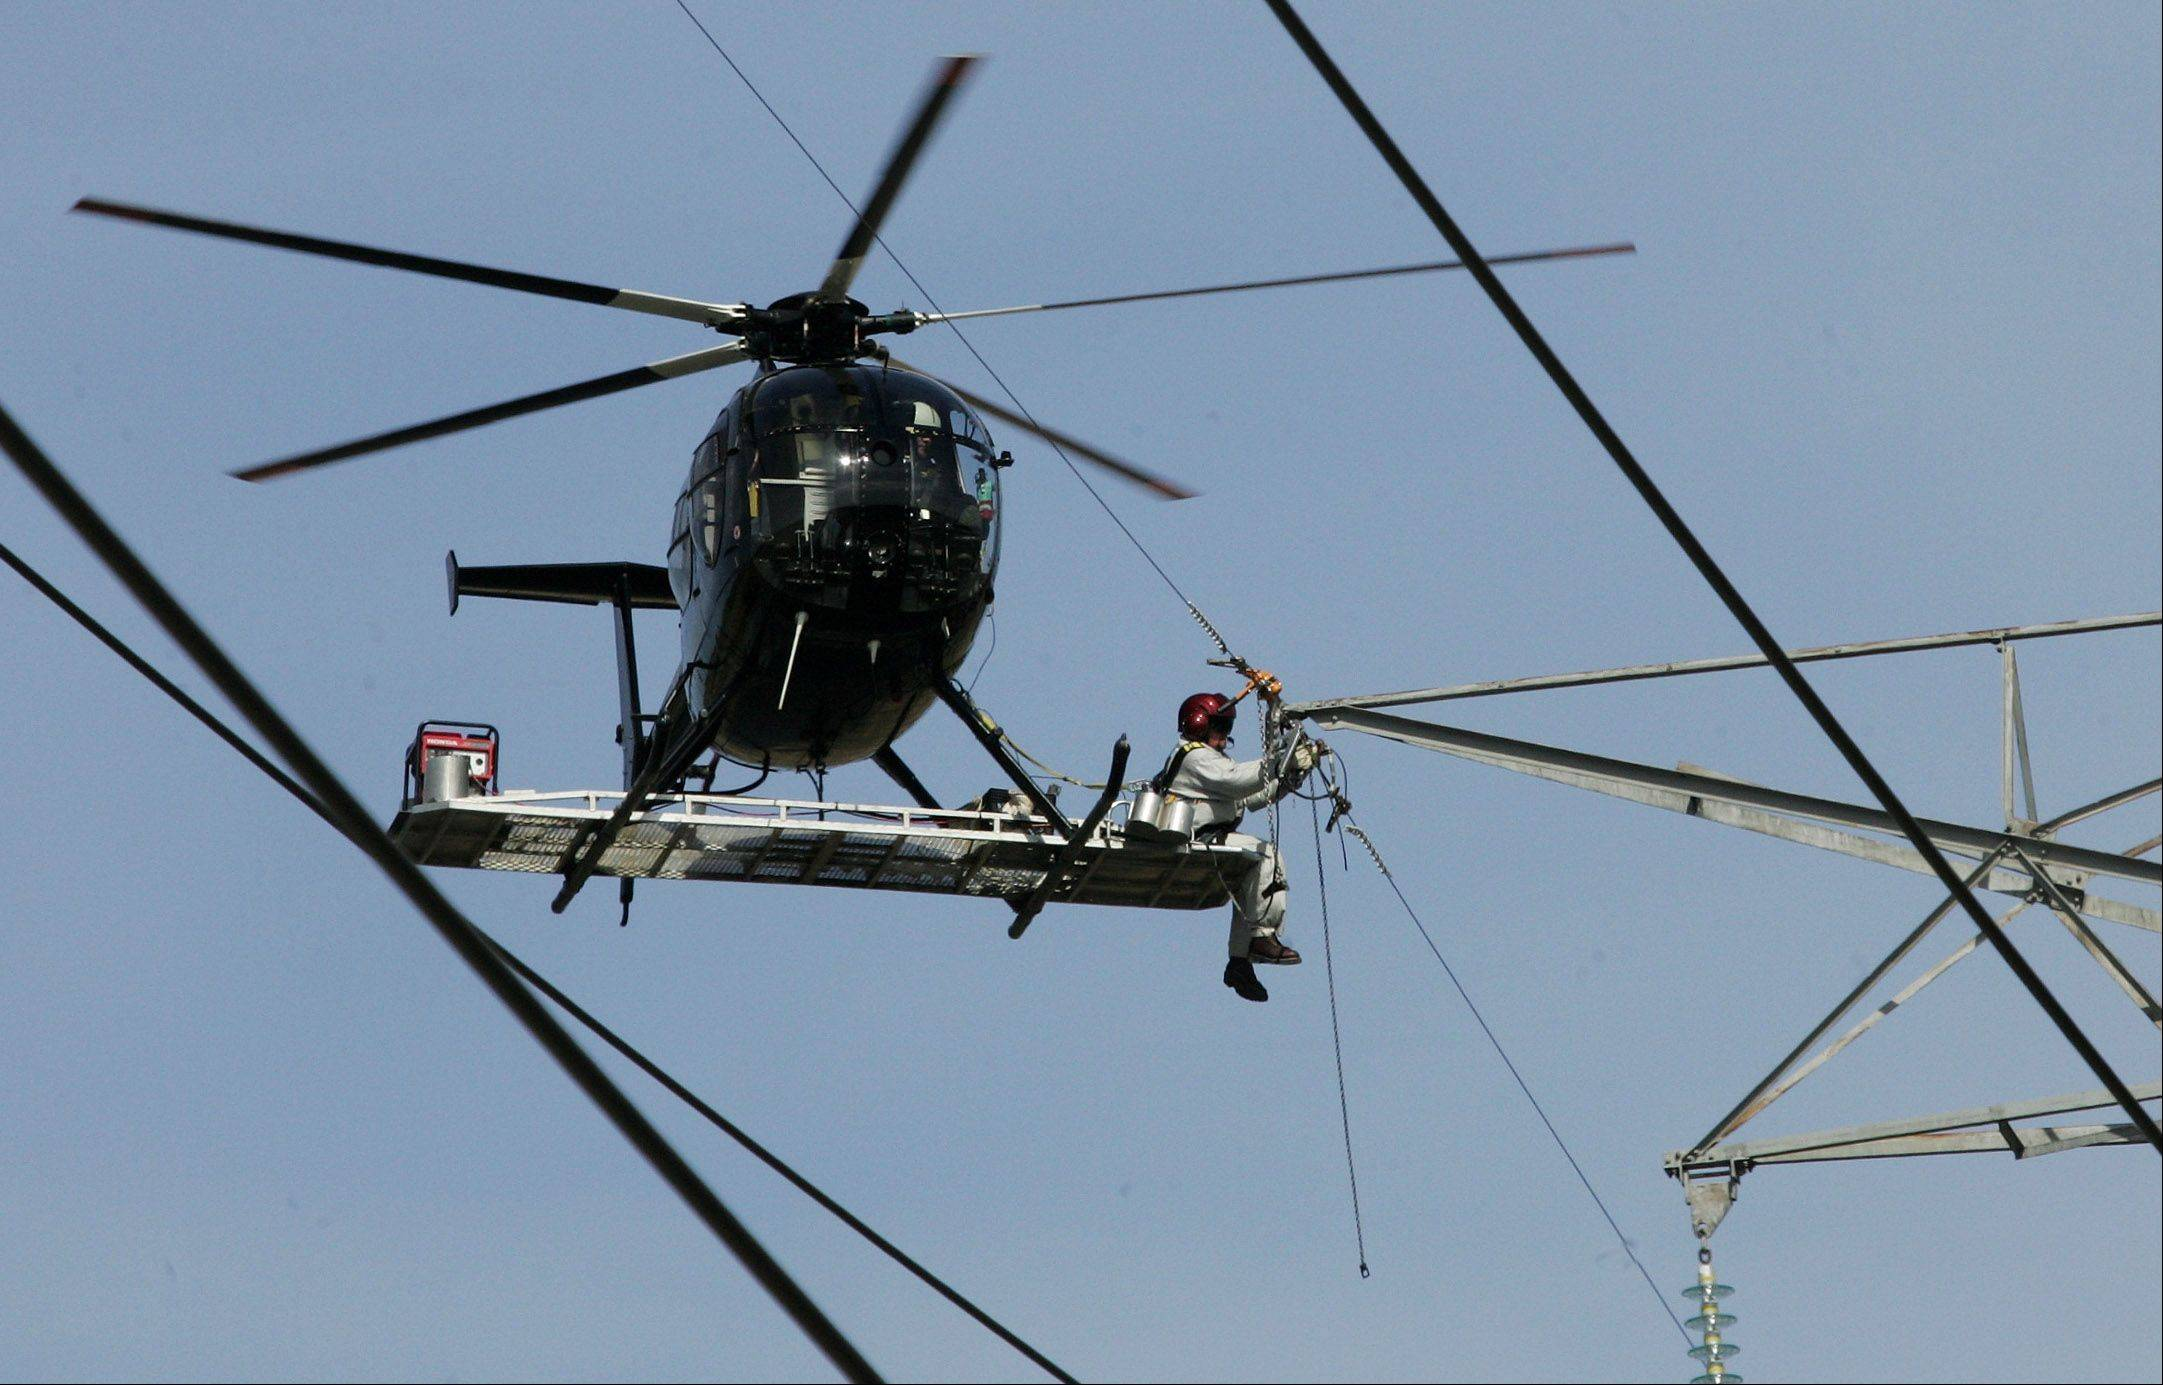 Personnel from ComEd use a helicopter and a maintenance linesman to work on high-tension power voltage lines along Milwaukee Avenue north of Route 137 in Libertyville. Technicians wear electric-field-resistant suits and because the helicopters are not touching the ground, this doesn't cause a high-voltage arc, and the work can be done on live wires.